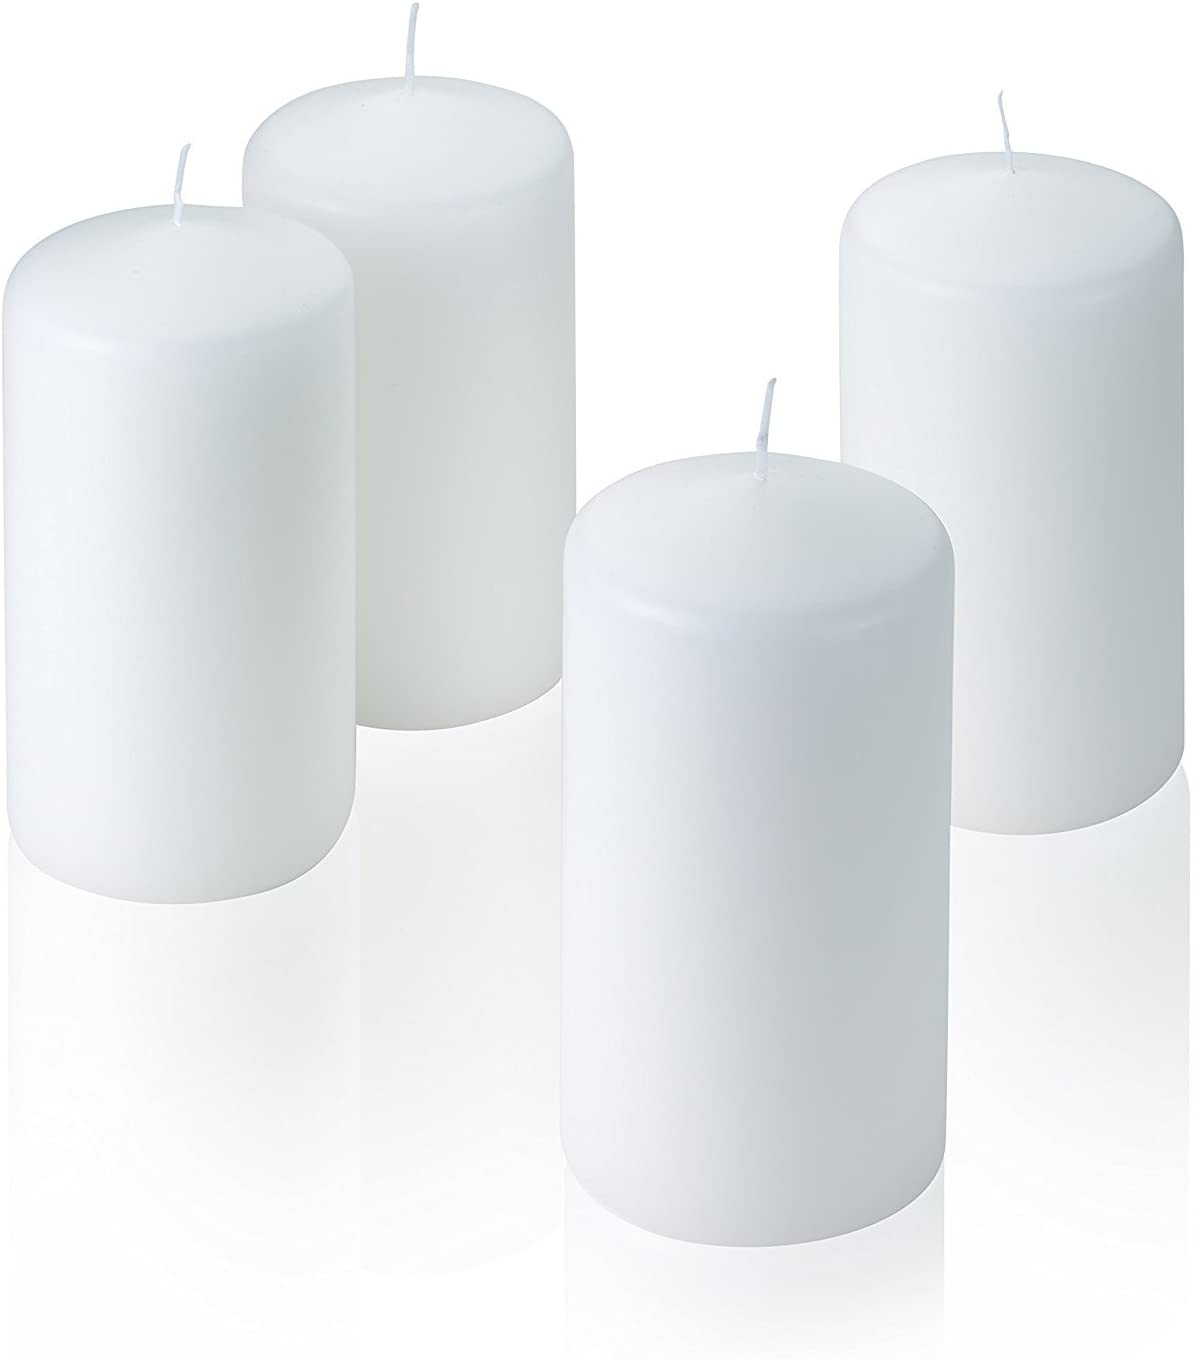 Hurricanes and Wedding Centerpieces 6 inch Tall 3 inch Thick Unscented Used for Lanterns 36 Hour Burn Time Light In The Dark Set of 4 Vanilla Pillar Candles